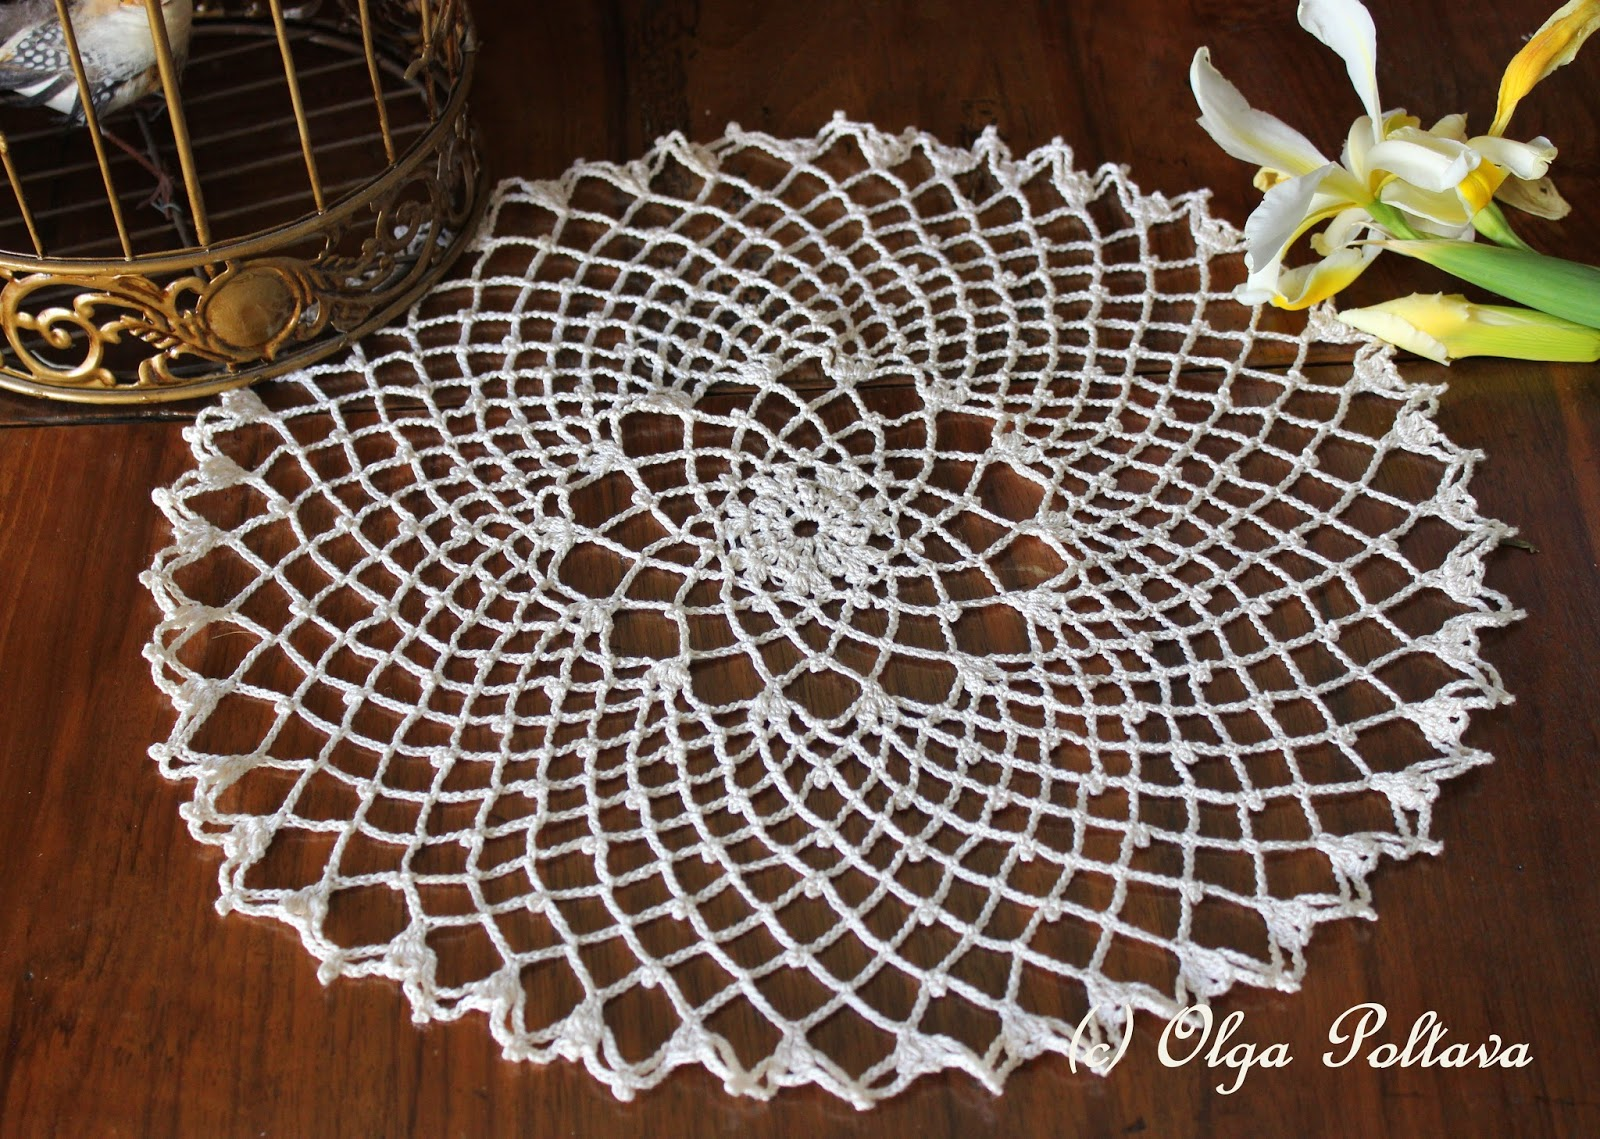 Lacy Crochet: Clusters, Chains and Picots Doily, My Free Crochet Pattern